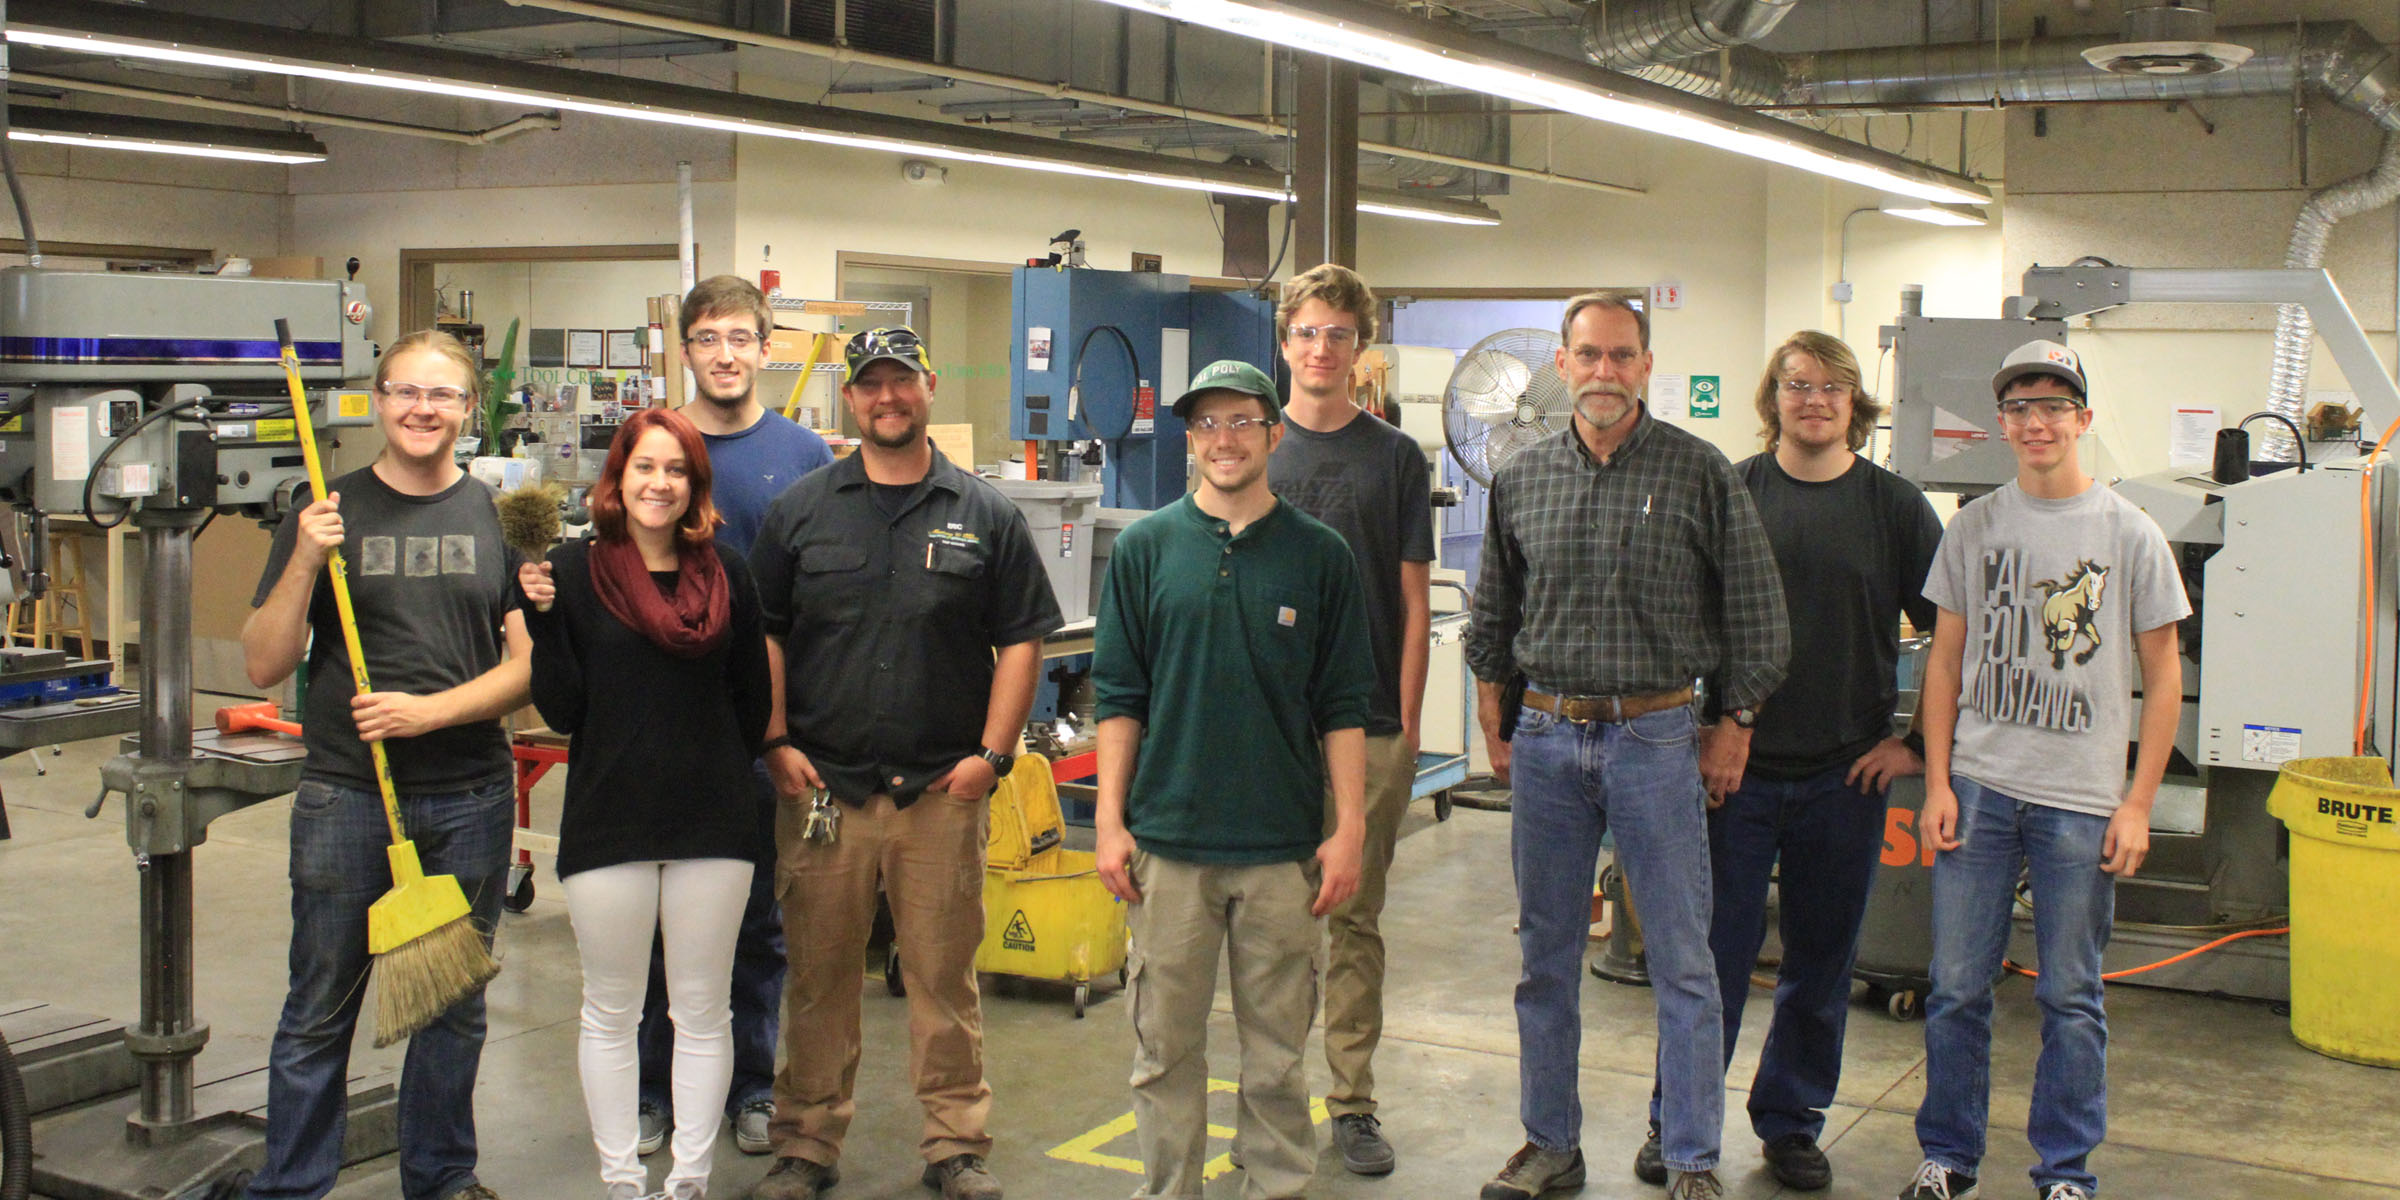 Shop technicians group photo